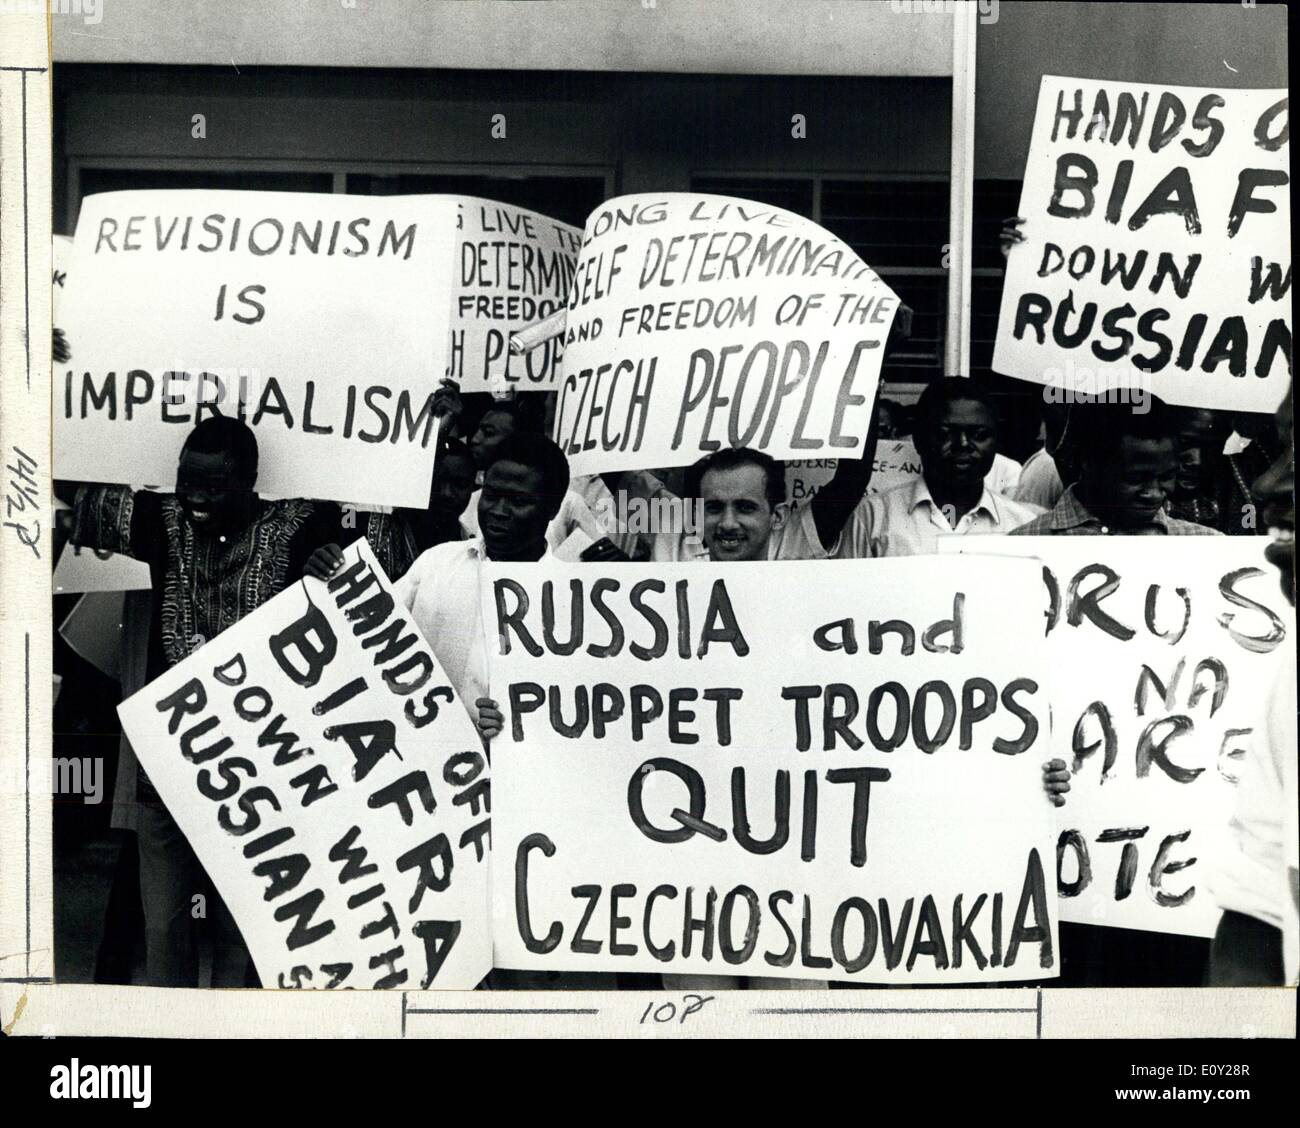 Aug. 24, 1968 - First anti-Soviet demonstration in Tanzania: More than 2000 students and youth participated in a massive demonstration against the Soviet invasion of Czechoslovakia in front of the Soviet Embassy in DaresSalaam, Tanzania. The demonstrators throwing stones eggs and Russian literature were however all the time controlled by the Police from getting into wild violence. - Stock Image